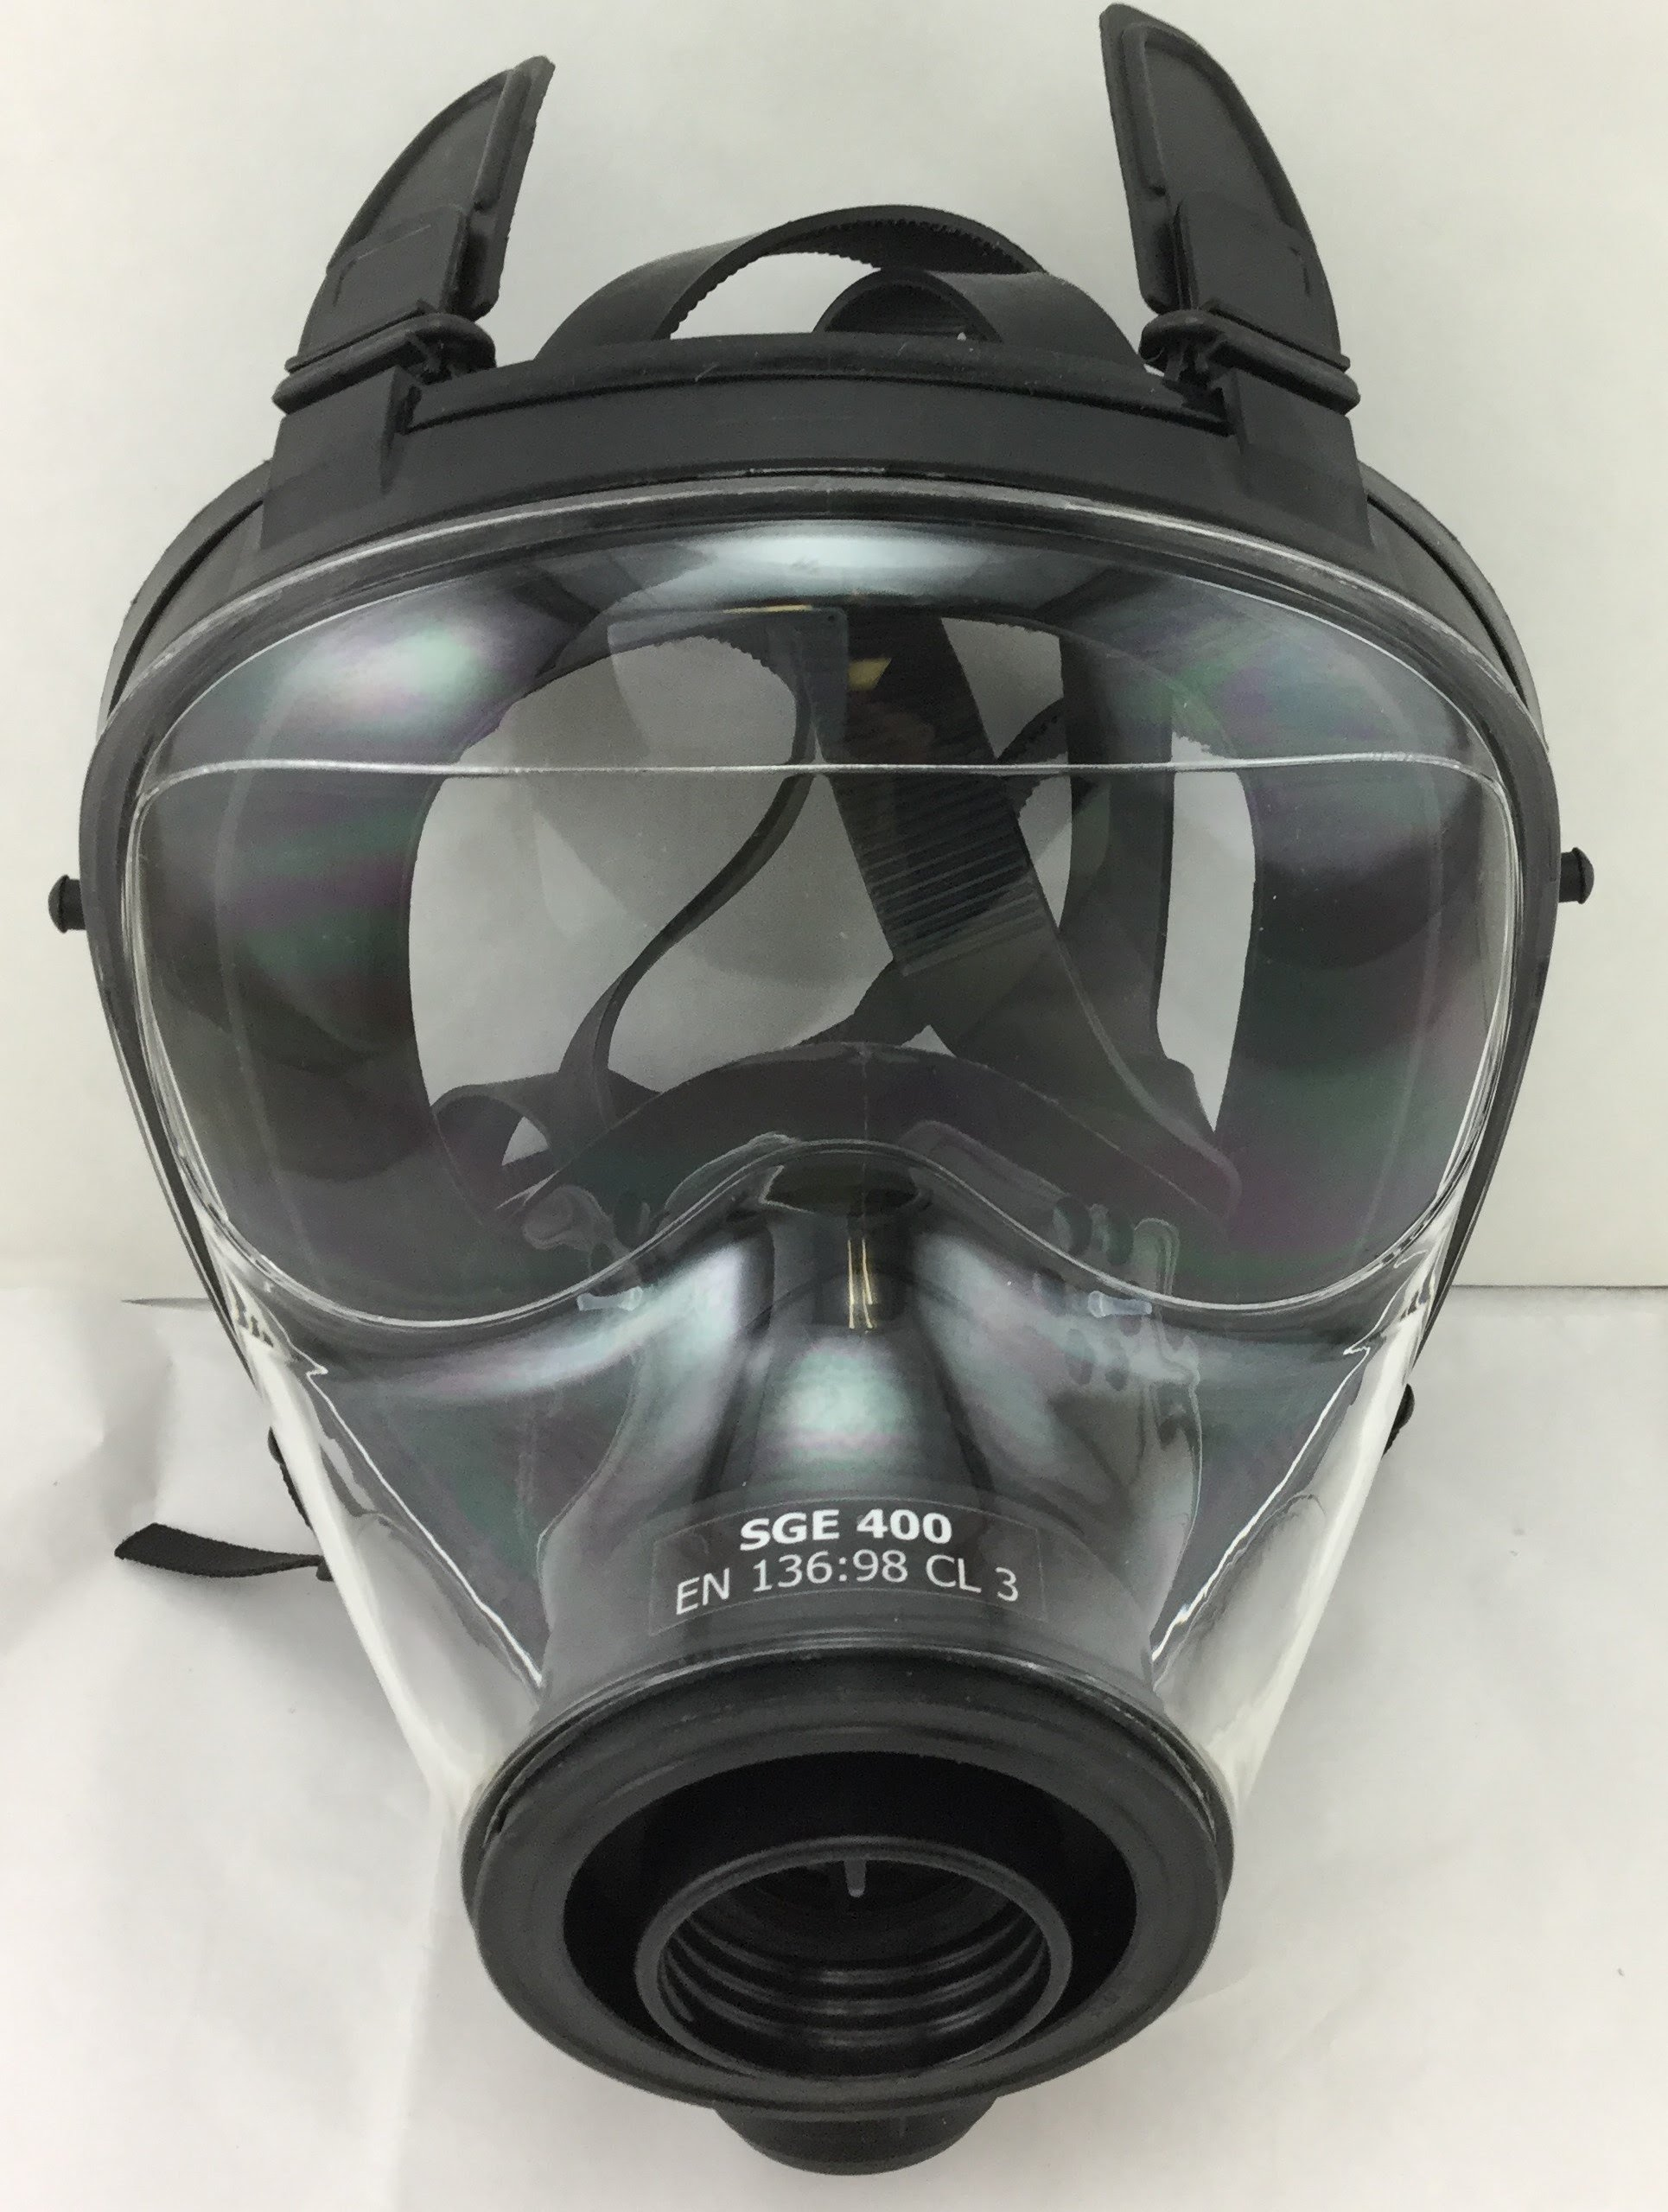 Israeli & NATO Military SGE 400 Gas Mask Respirator Made in 2017 by DISKIN